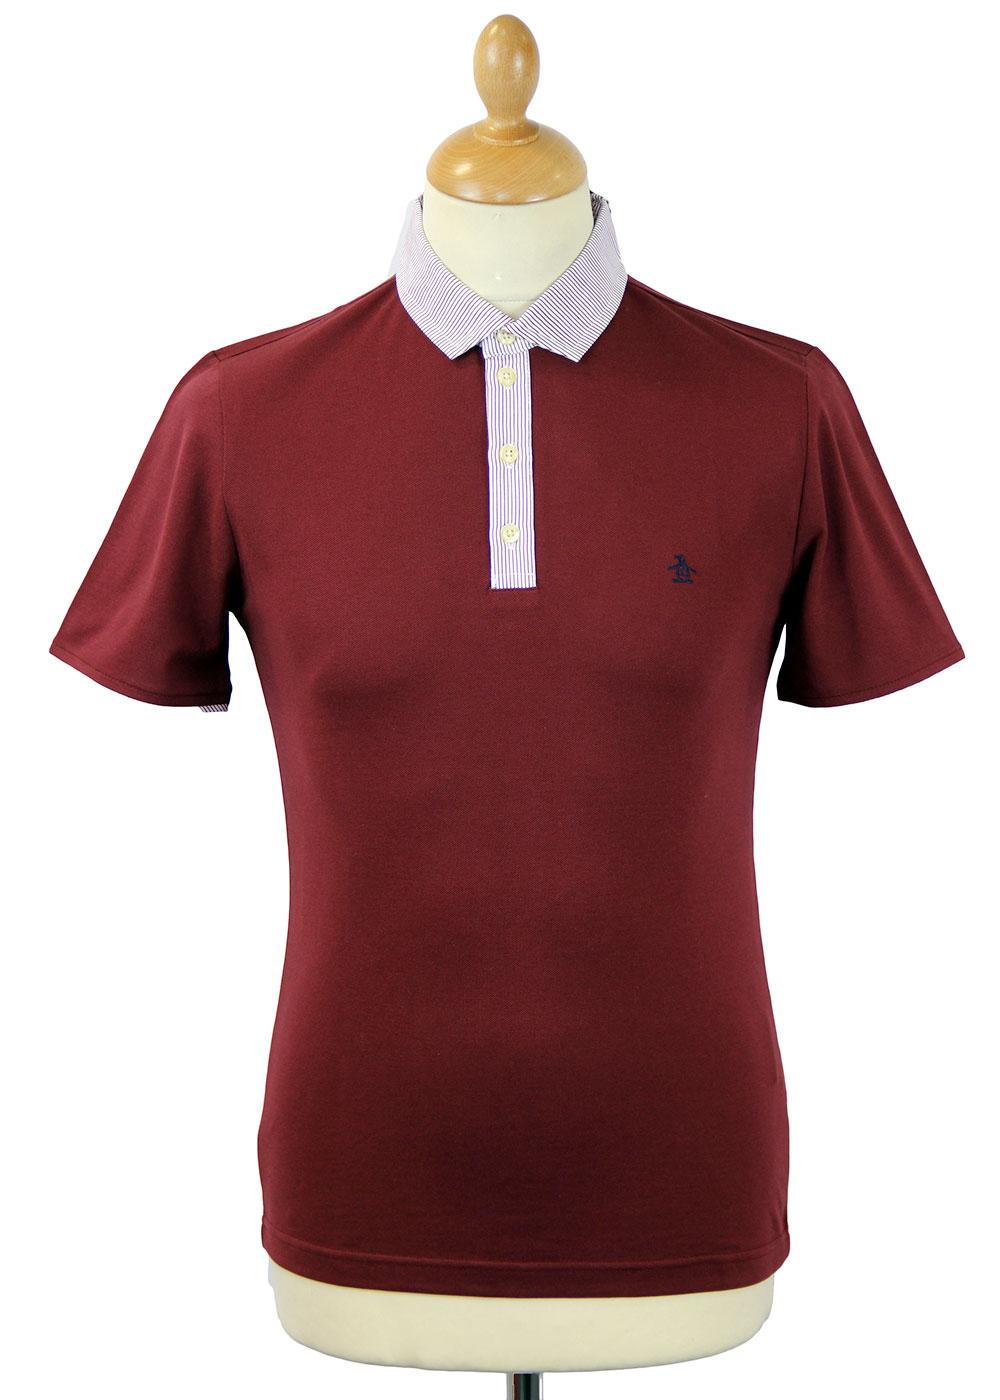 Gravia Original Penguin Retro Stripe Collar Polo T